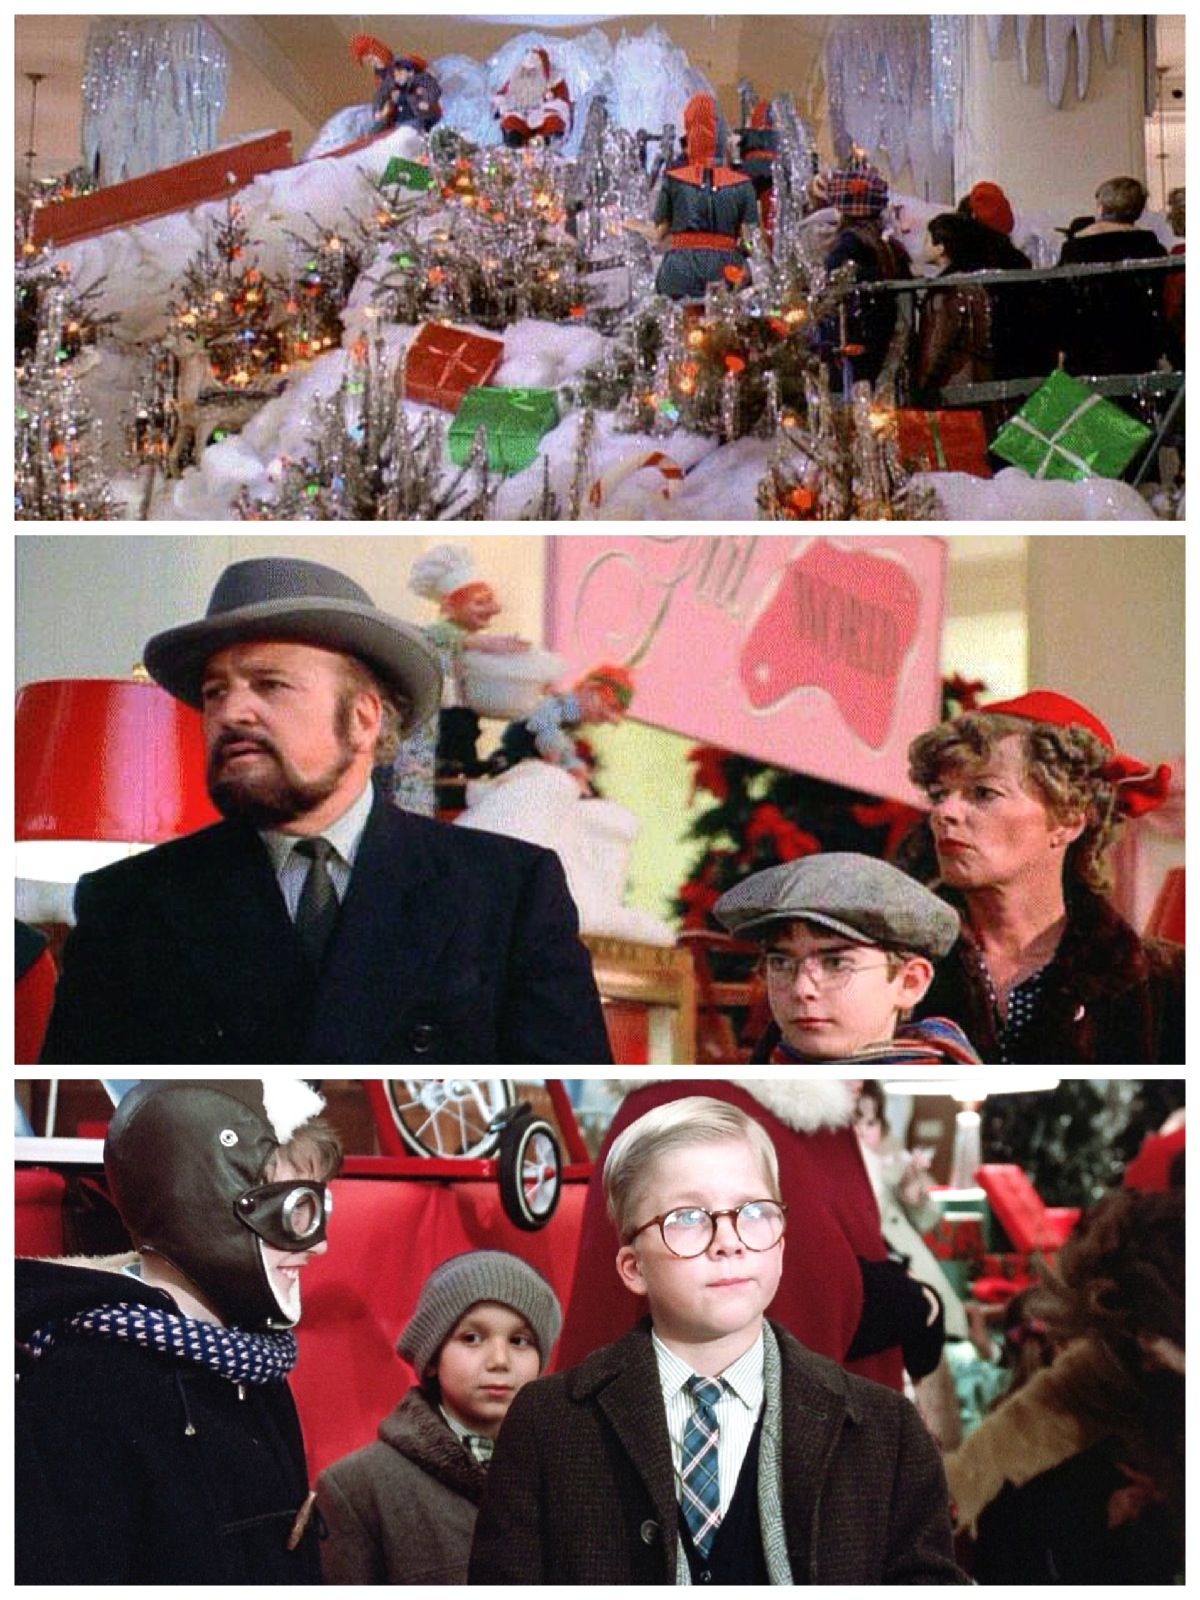 A Christmas Story 1983 Higbee's Department Store